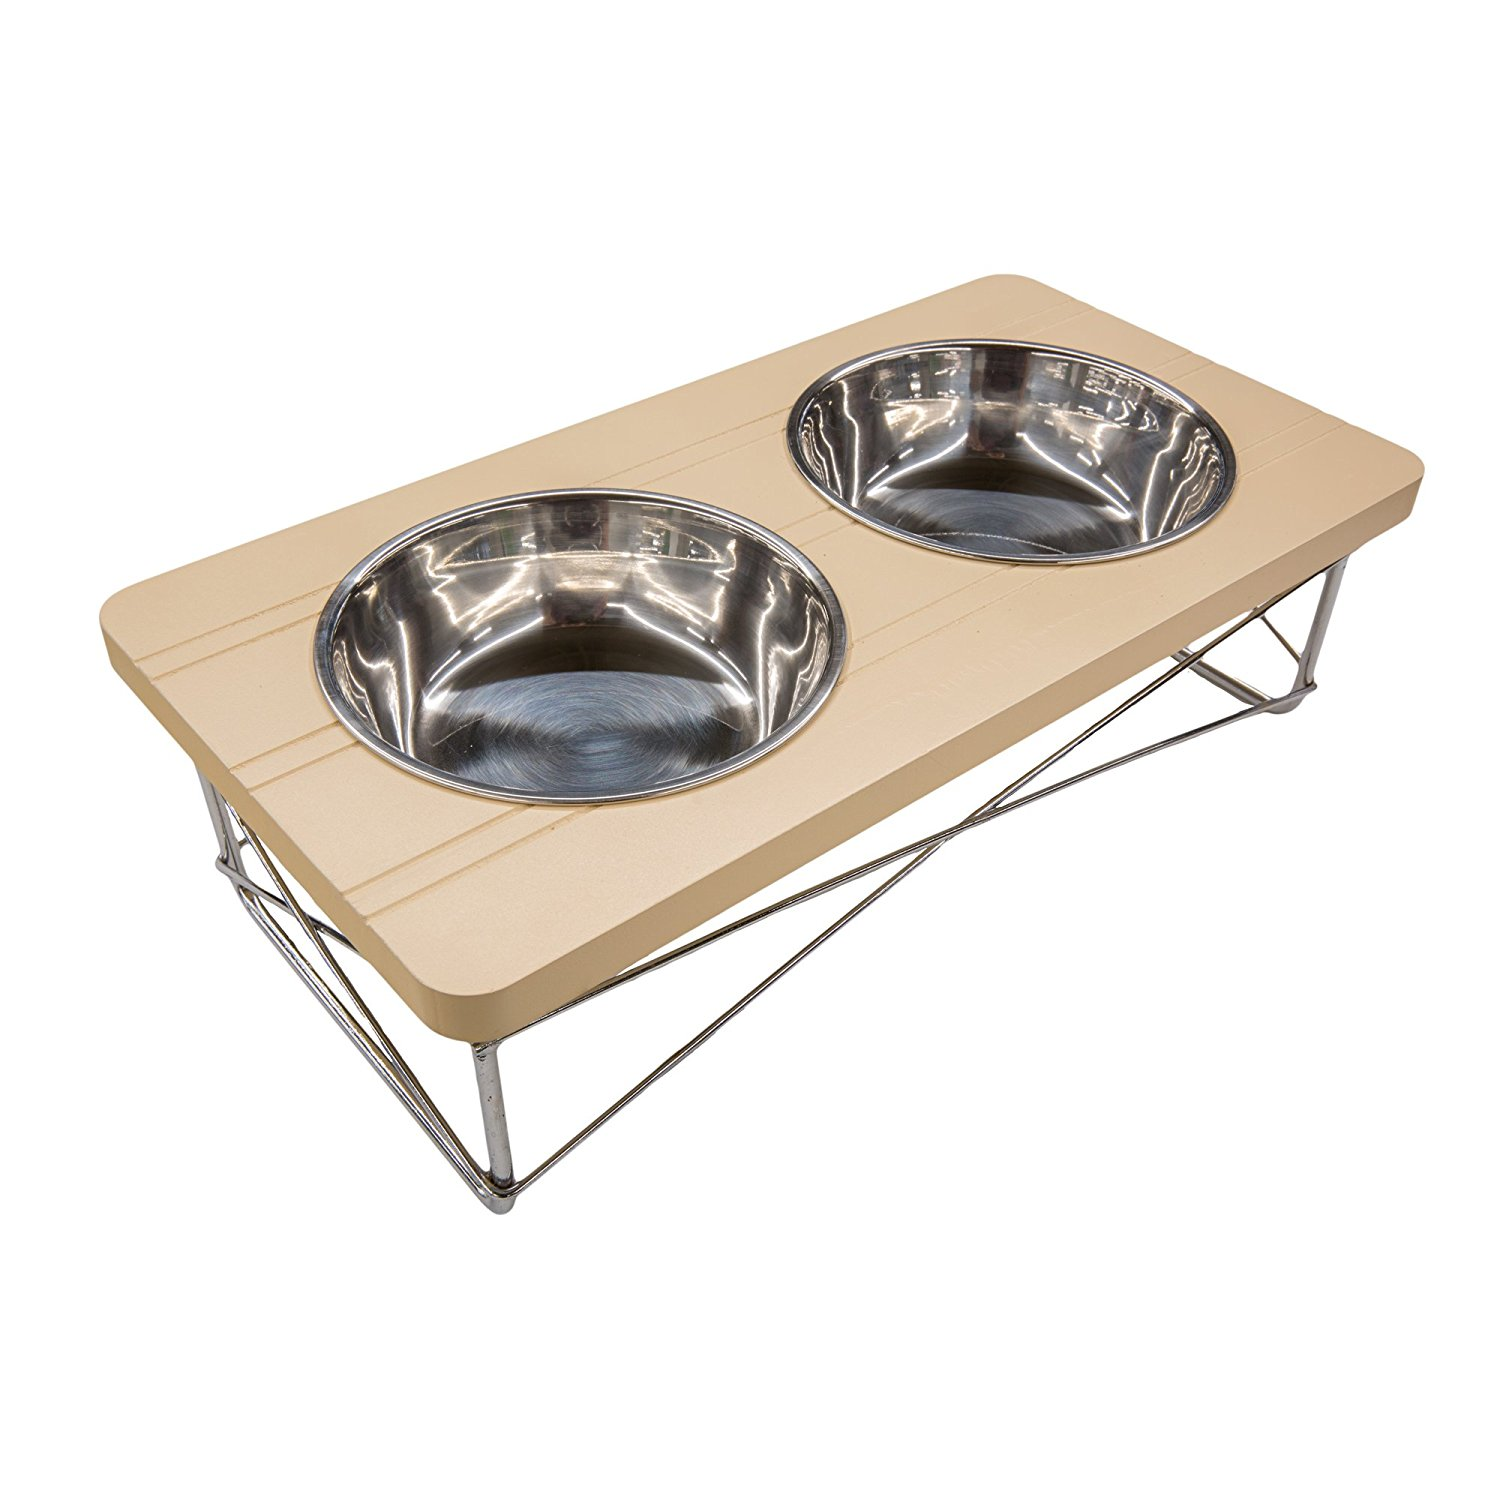 easyology pets stainless steel double elevated pet bowls cat small dogs feeder raised